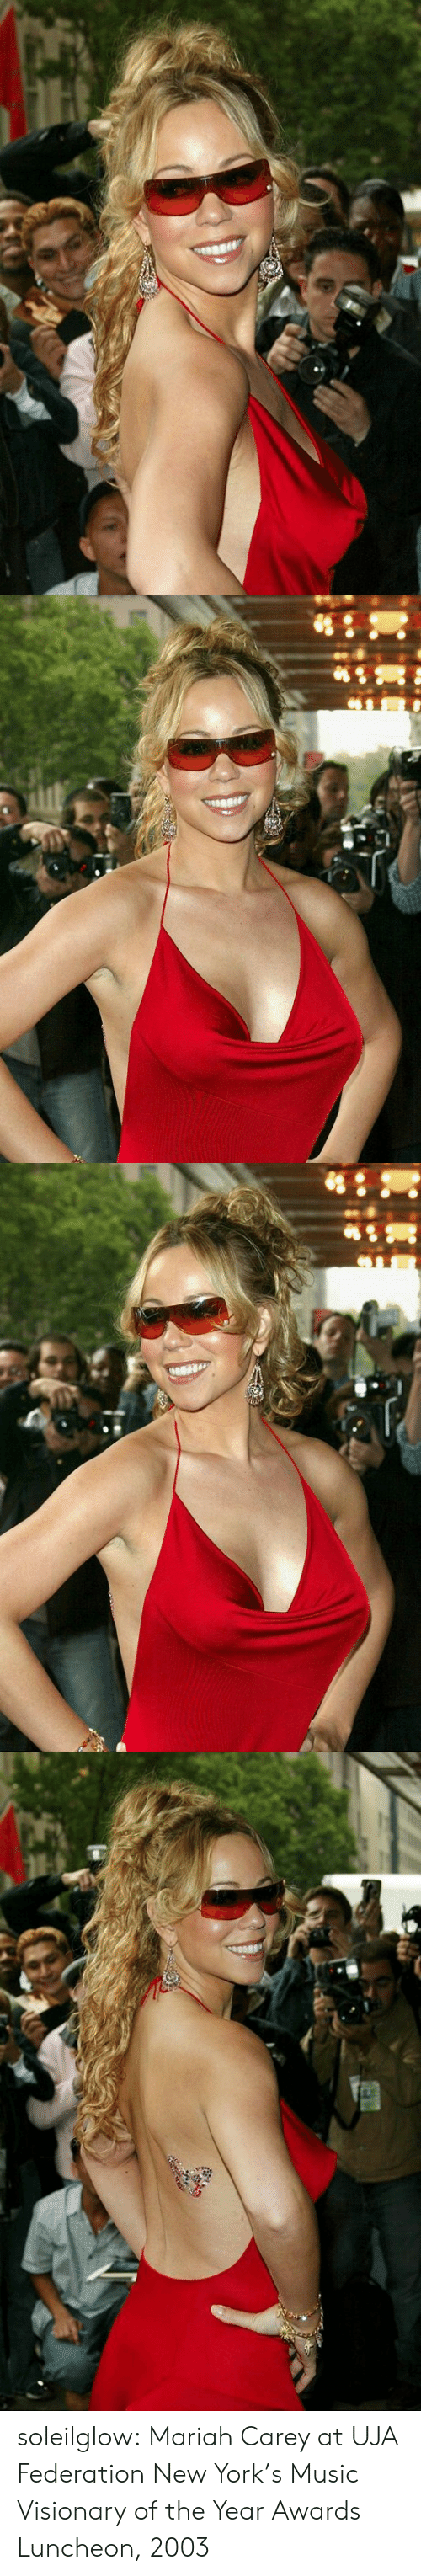 Mariah Carey, Music, and New York: soleilglow: Mariah Carey at UJA Federation New York's Music Visionary of the Year Awards Luncheon, 2003